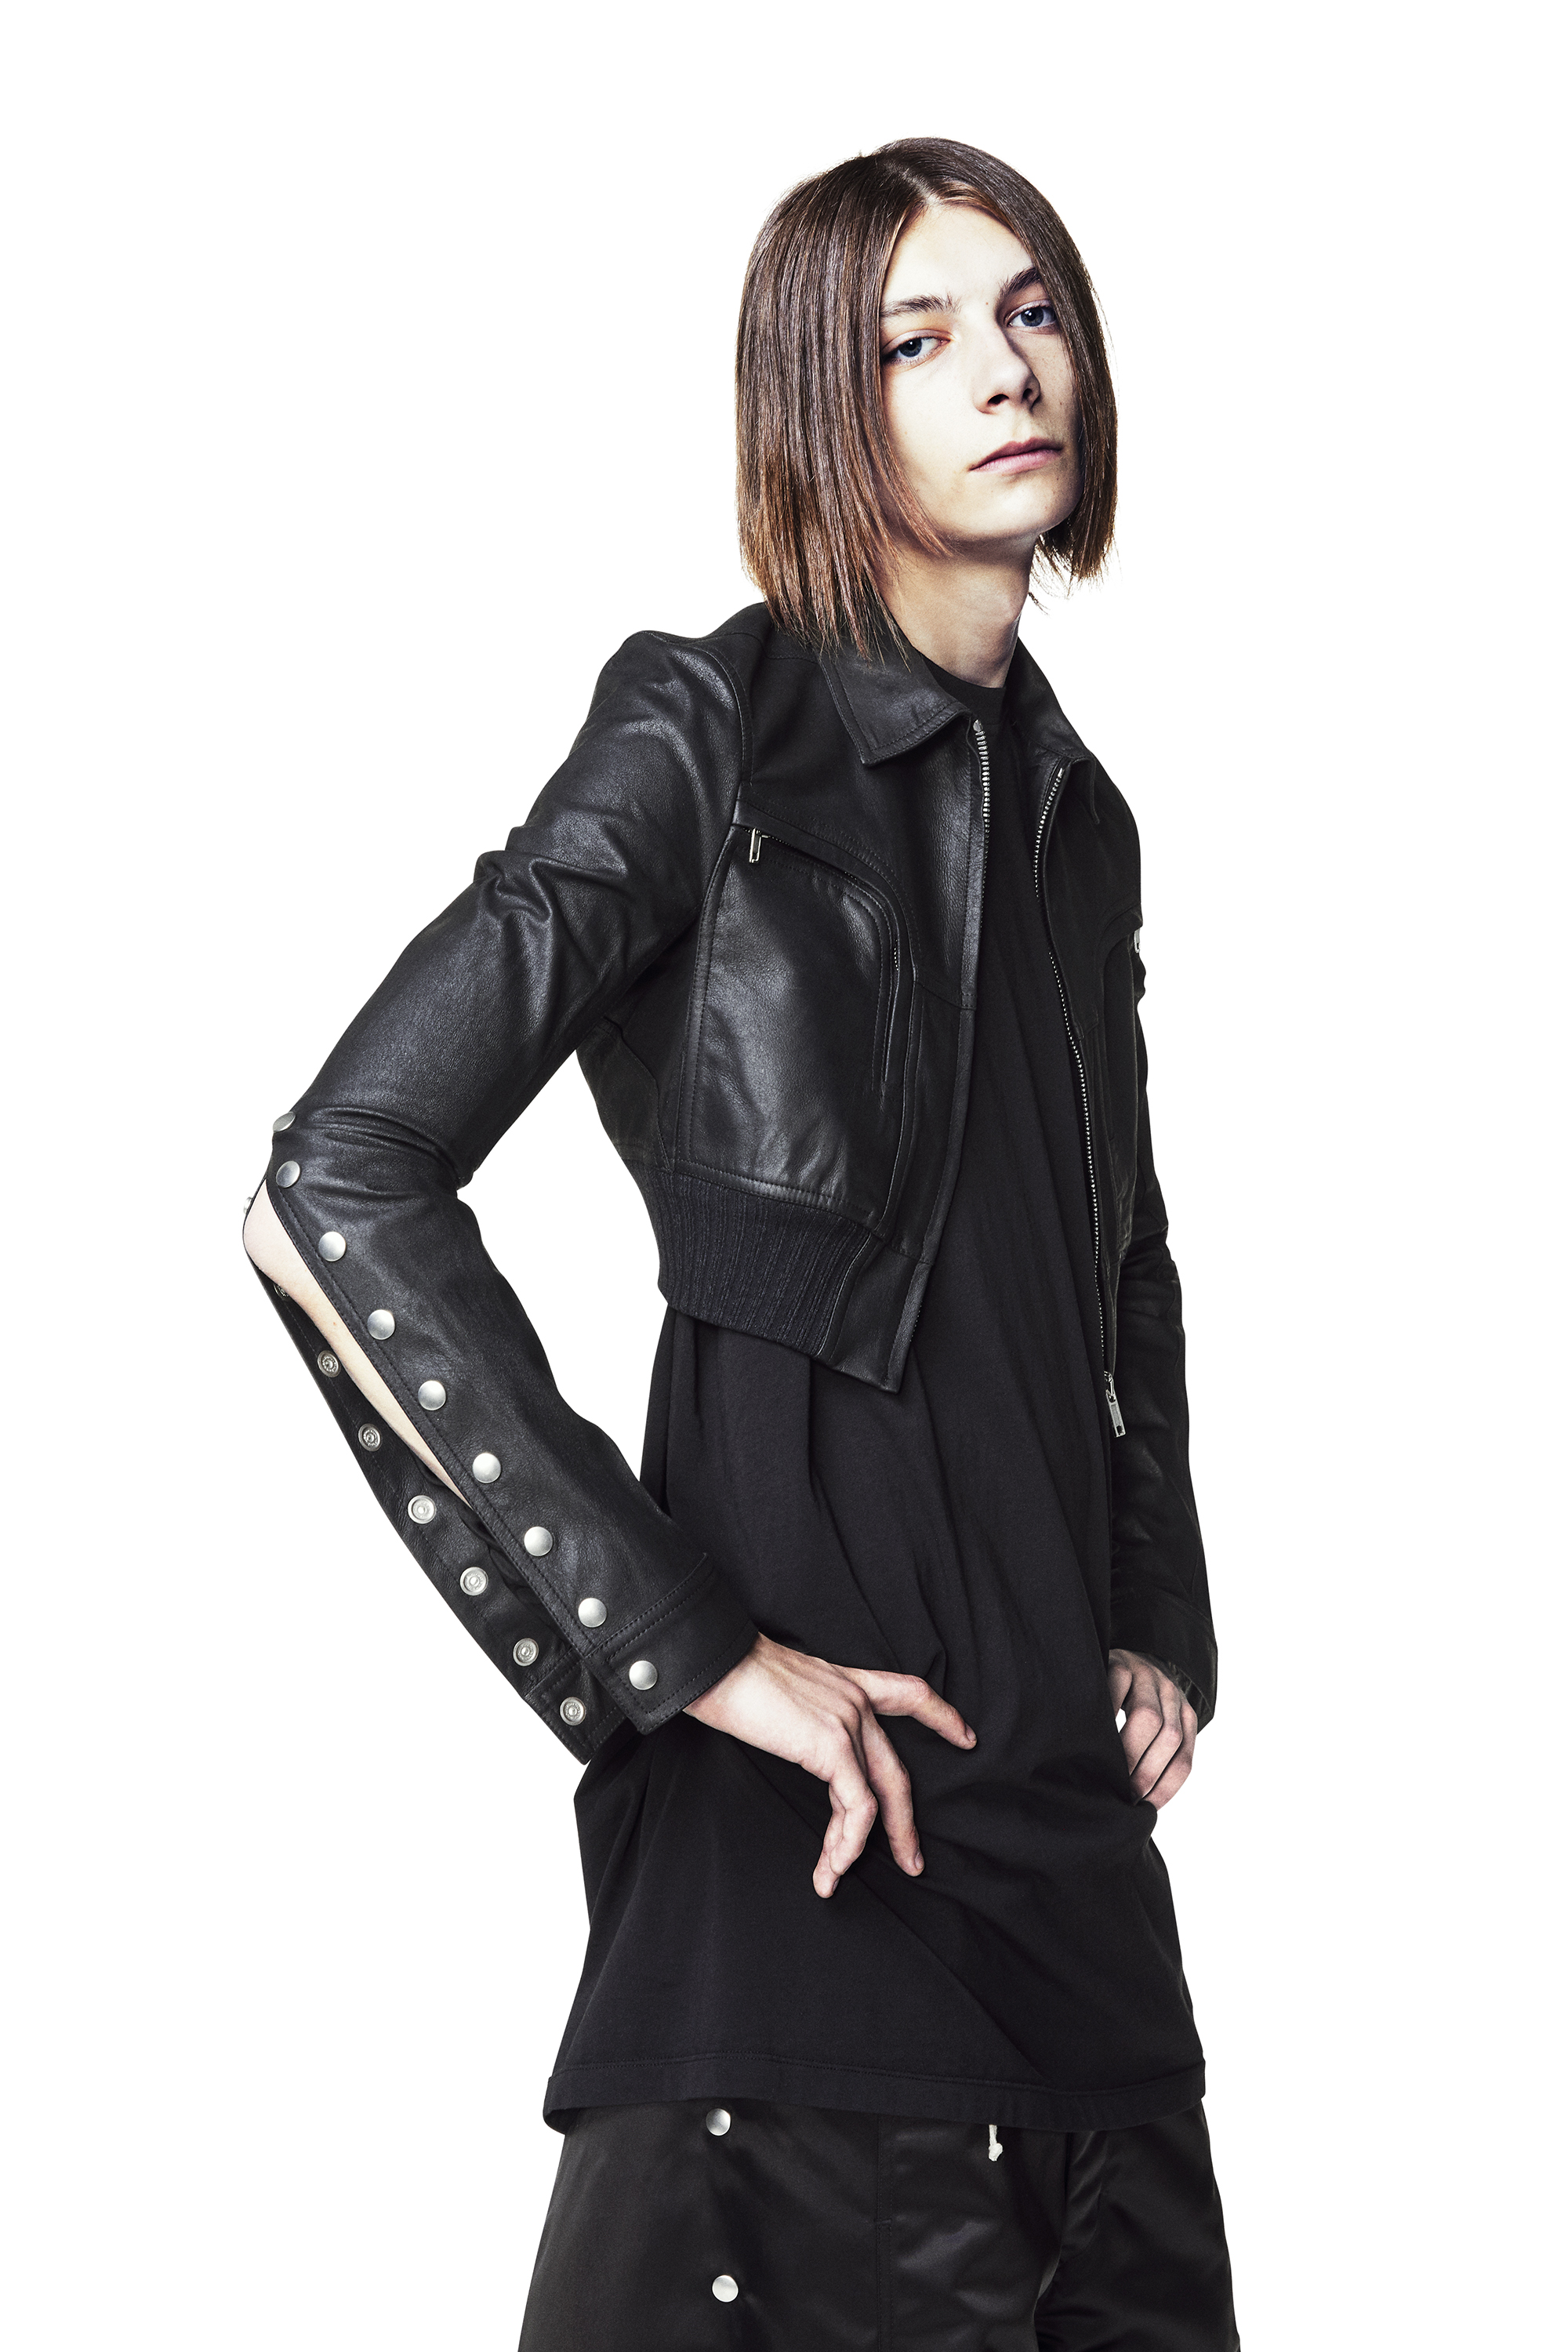 03 180621 rick owens babel ss19 s7 lawrence 073 f